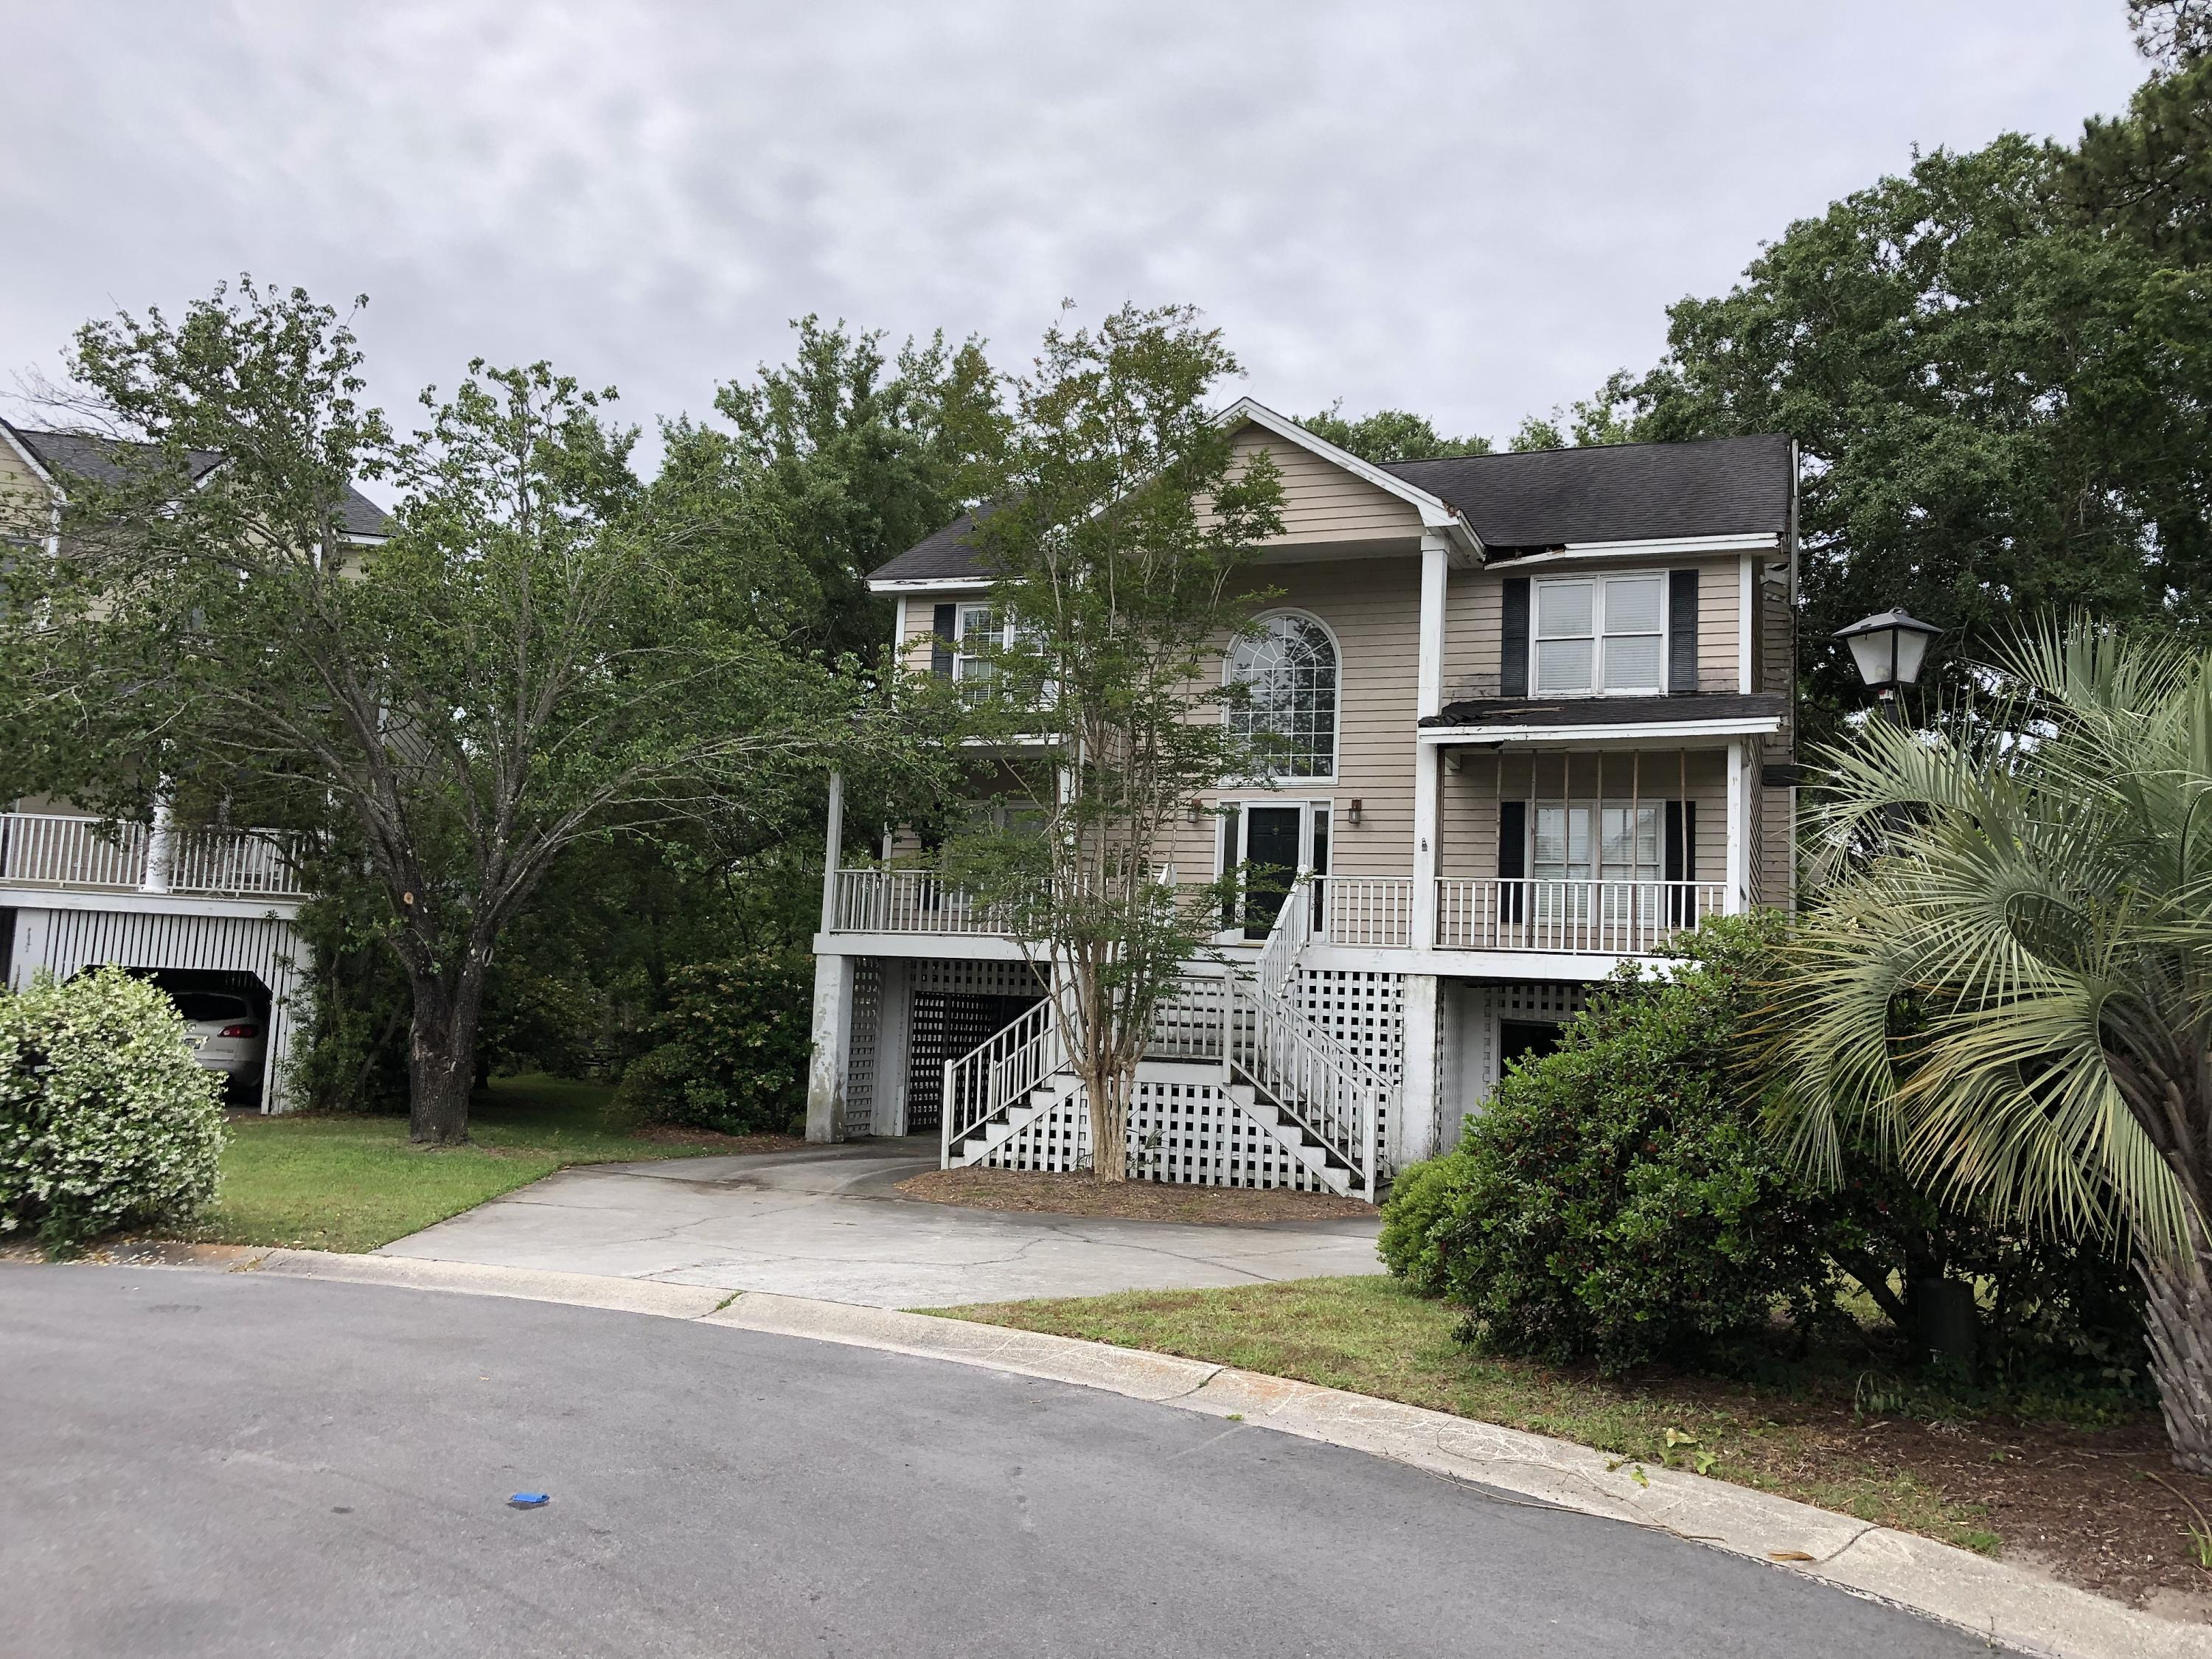 Fiddlers Marsh Homes For Sale - 1507 Fiddlers Lake, Mount Pleasant, SC - 1